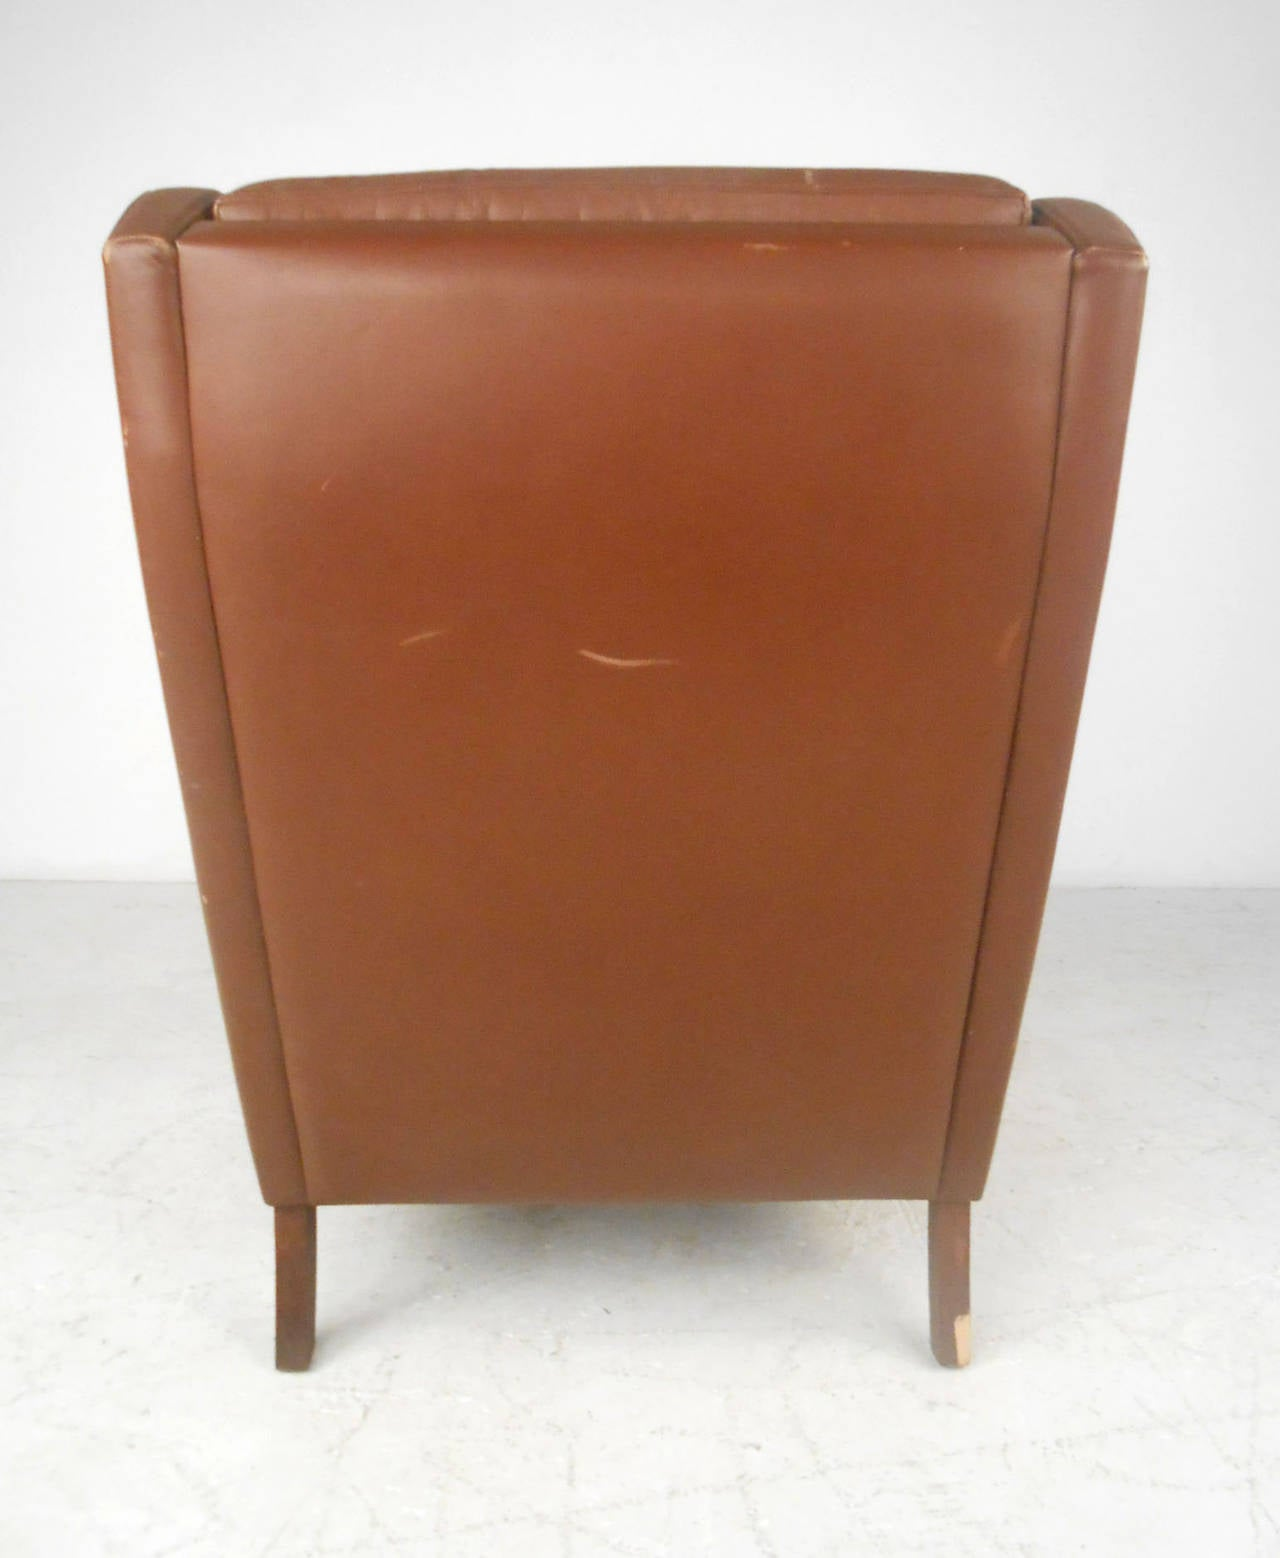 Unique Mid-Century Modern Vintage Leather Danish Lounge Chair For Sale 1